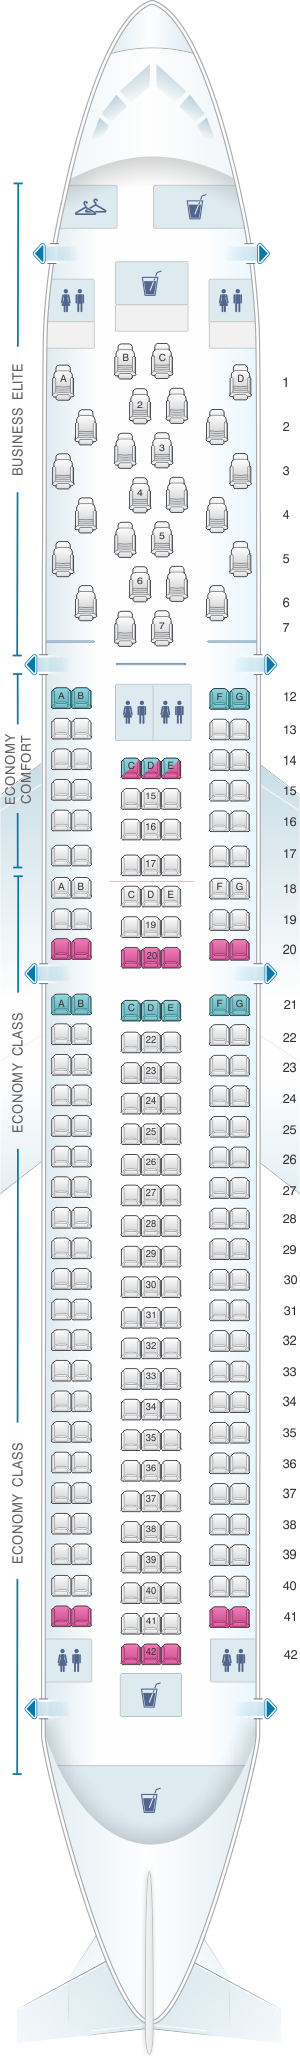 Seat map for Delta Air Lines Boeing B767 300ER (76Z V2)